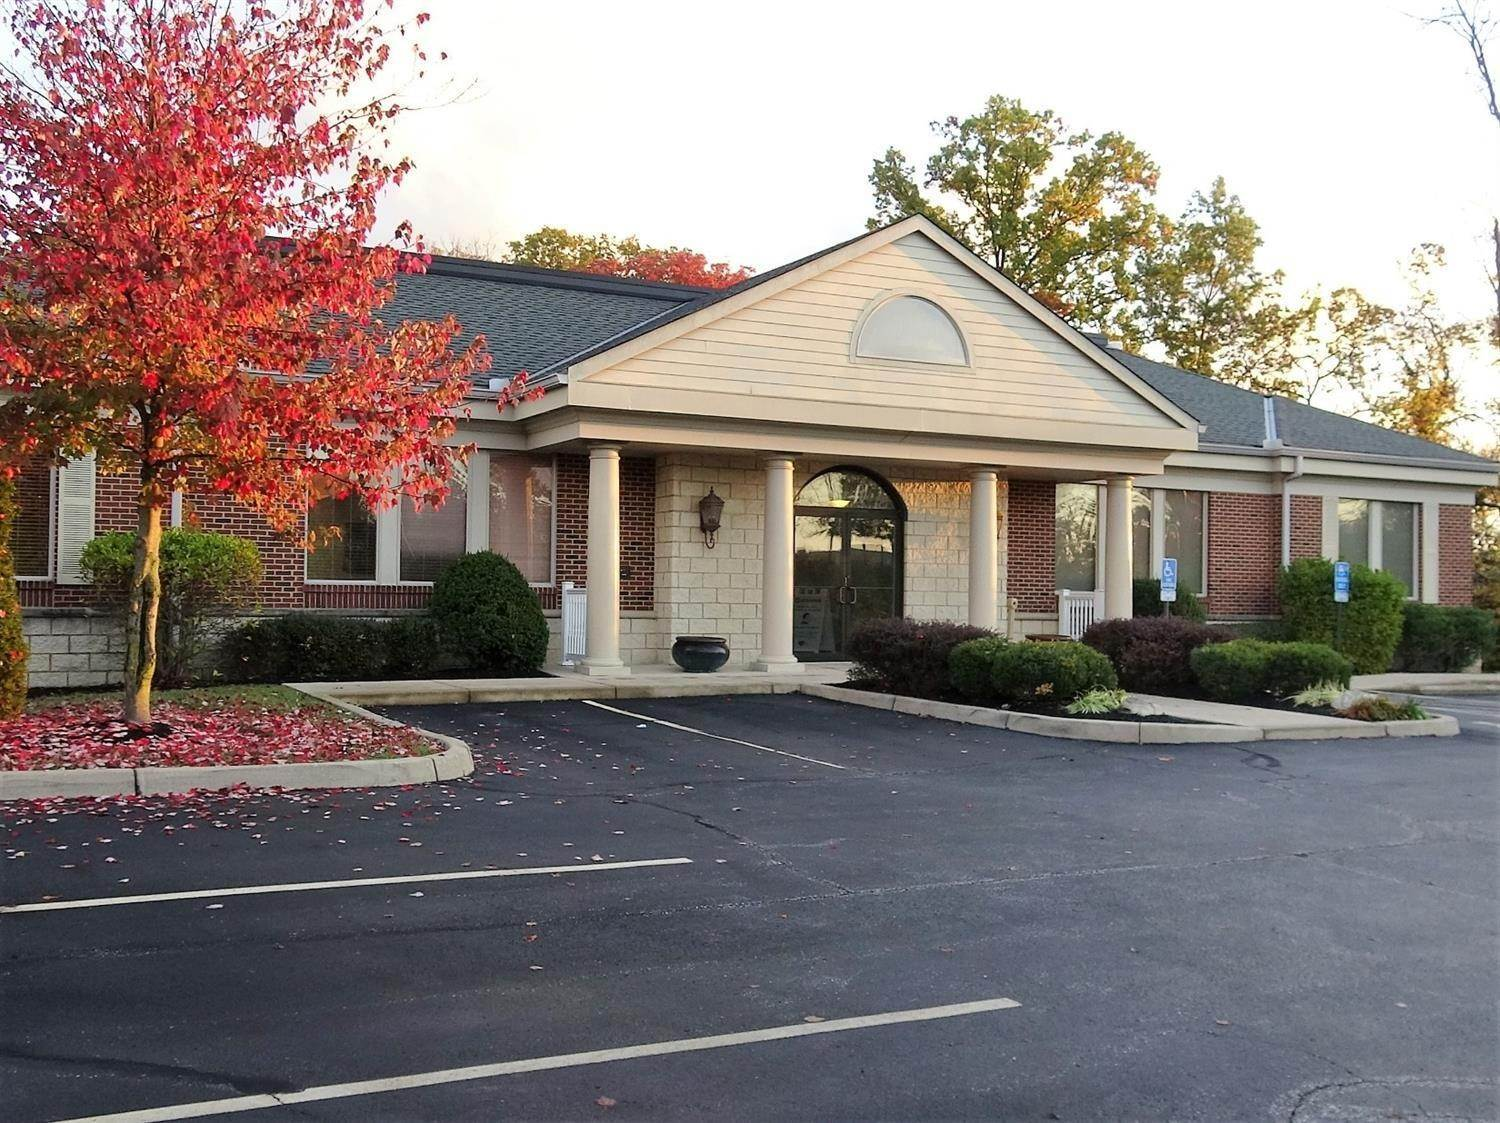 Commercial for Sale at 5240 E Galbraith Road Sycamore Twp, Ohio 45236 United States